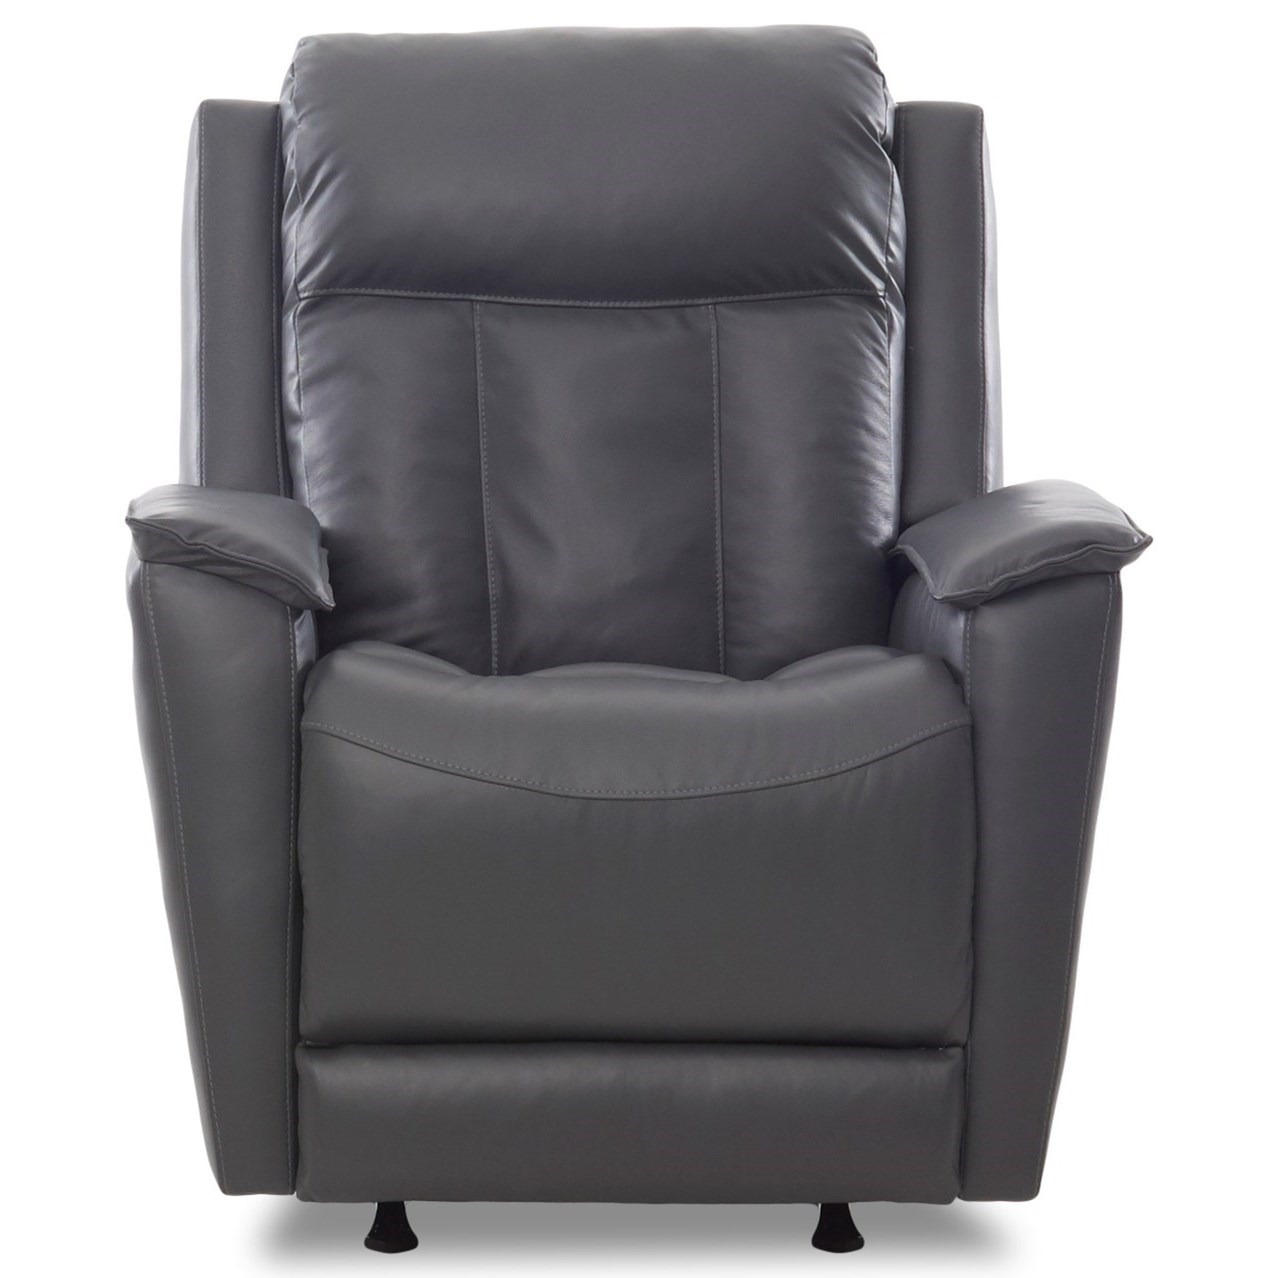 Grant Recliner by Klaussner at Johnny Janosik